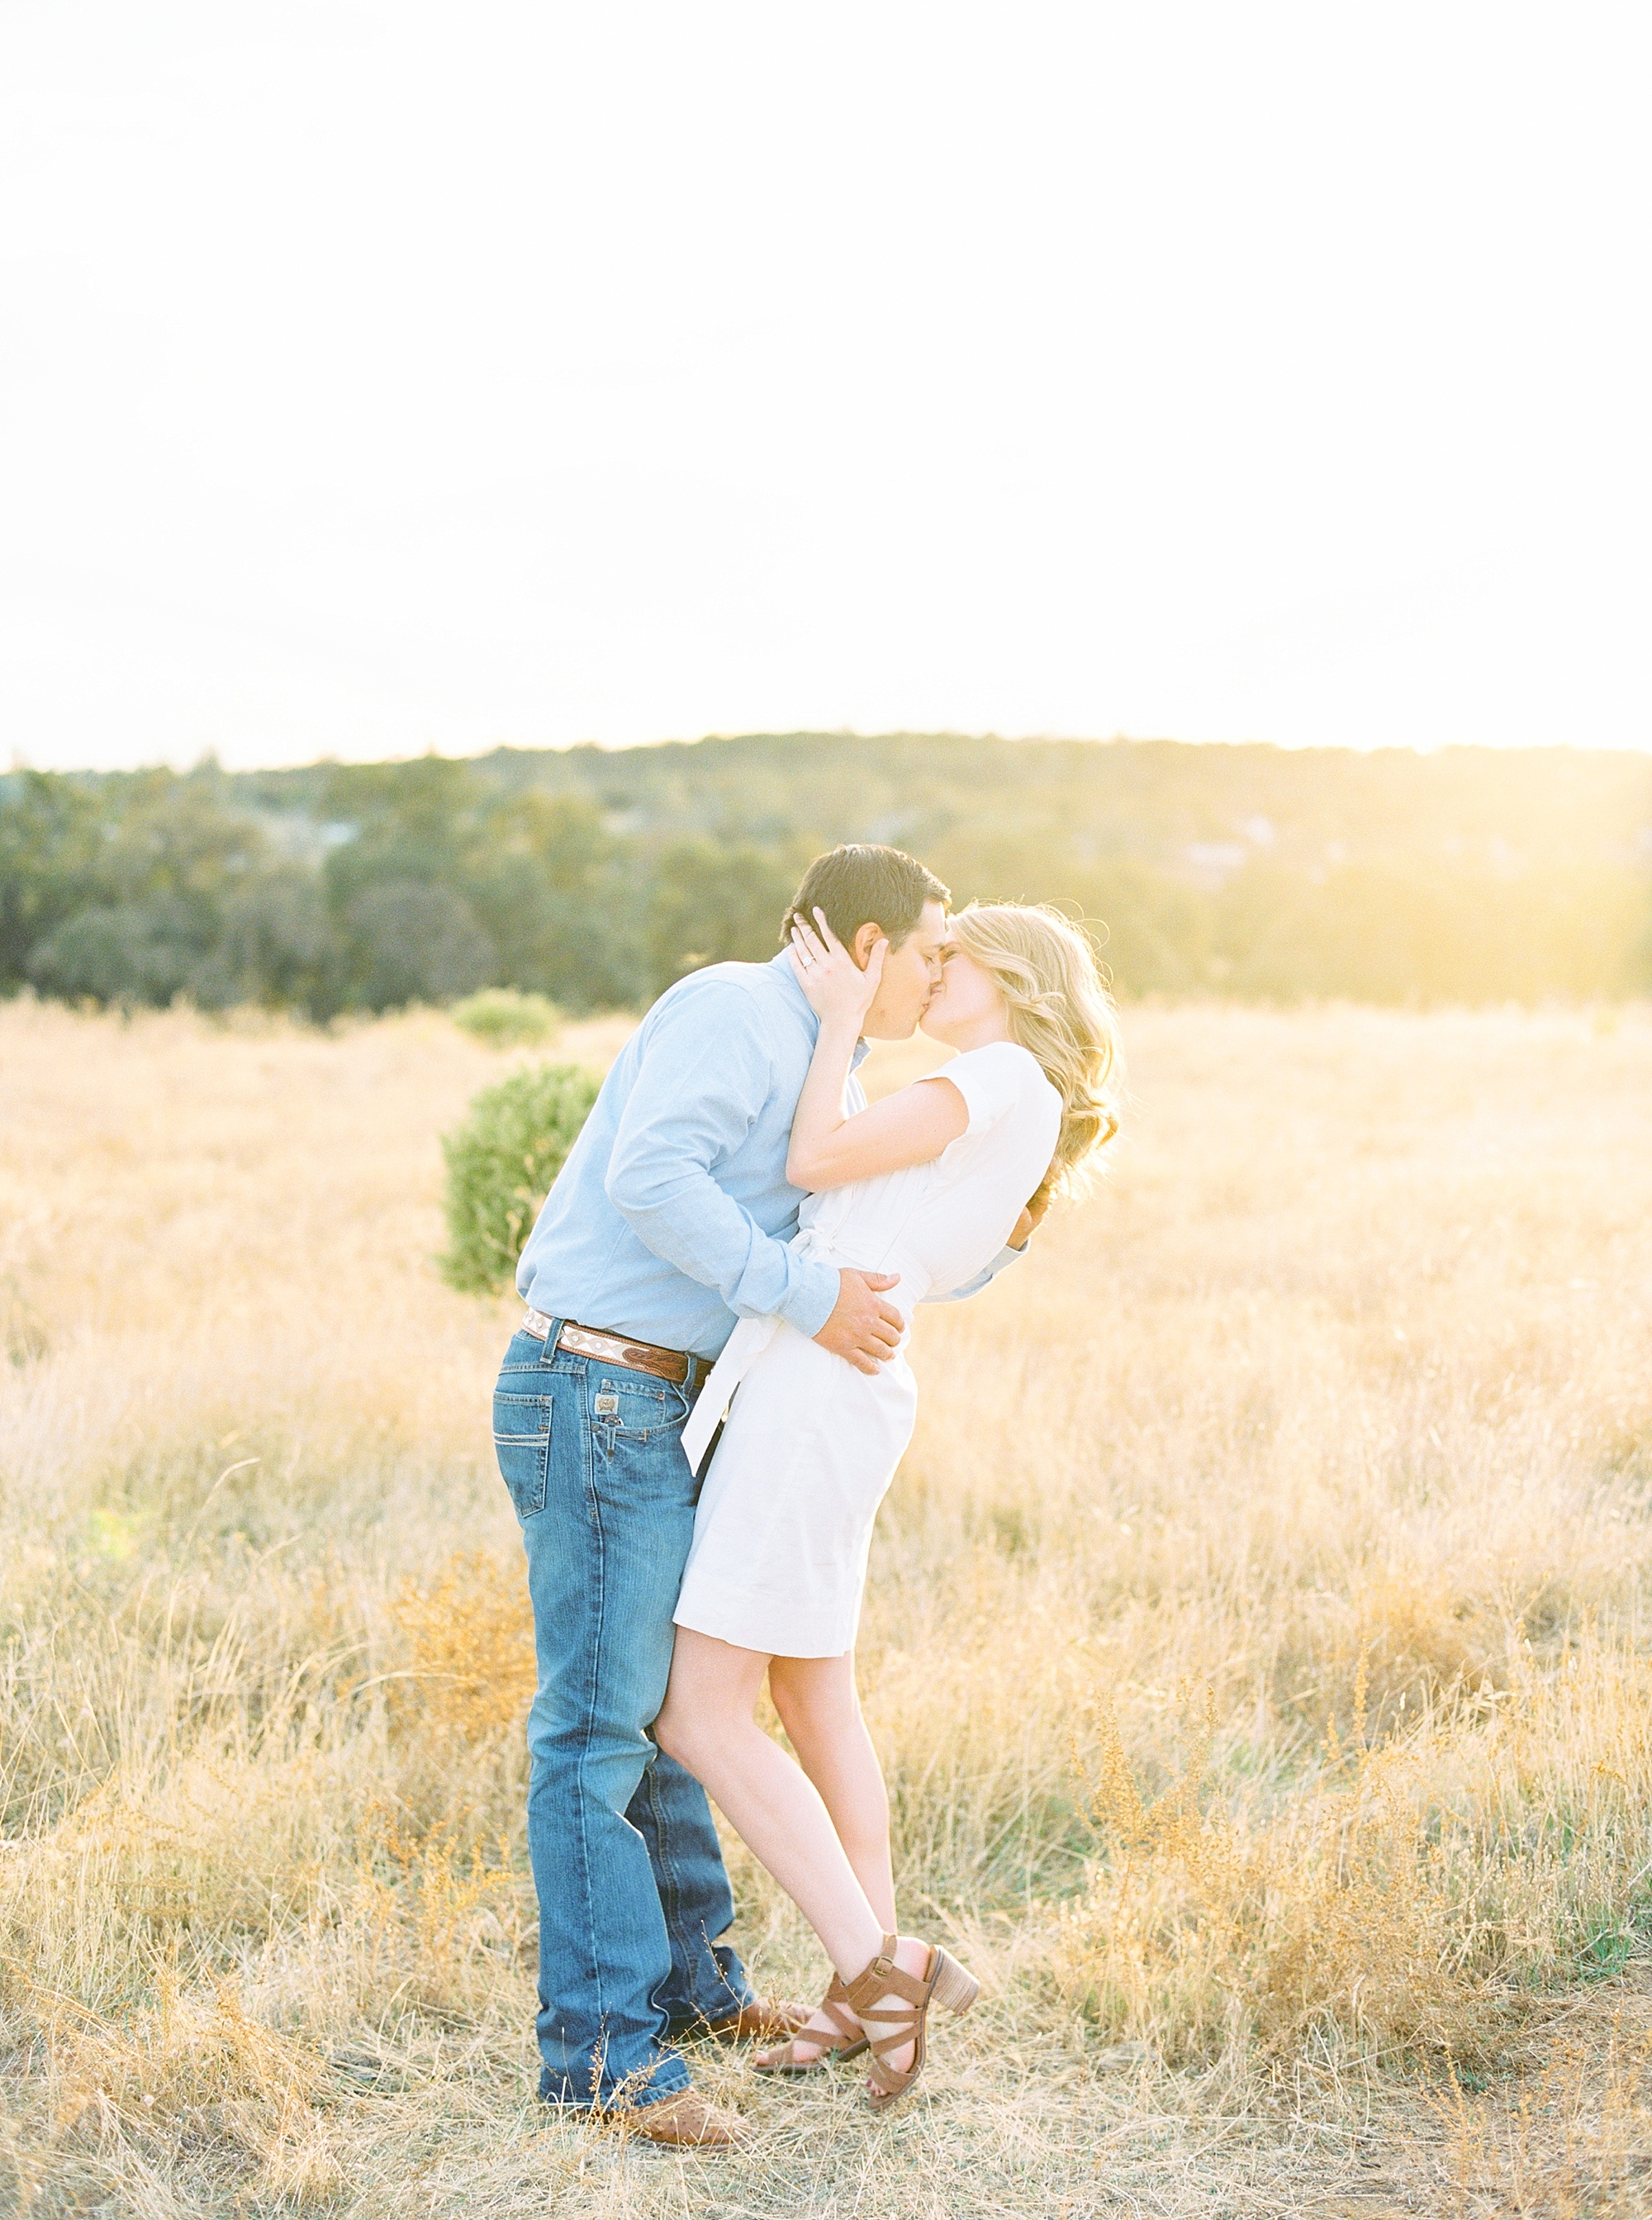 Golden Hills Engagement Session - Film Engagement Session - Ashley Baumgartner - Sacramento Wedding Photography - Stone Barn Ranch Wedding Couple_0017.jpg